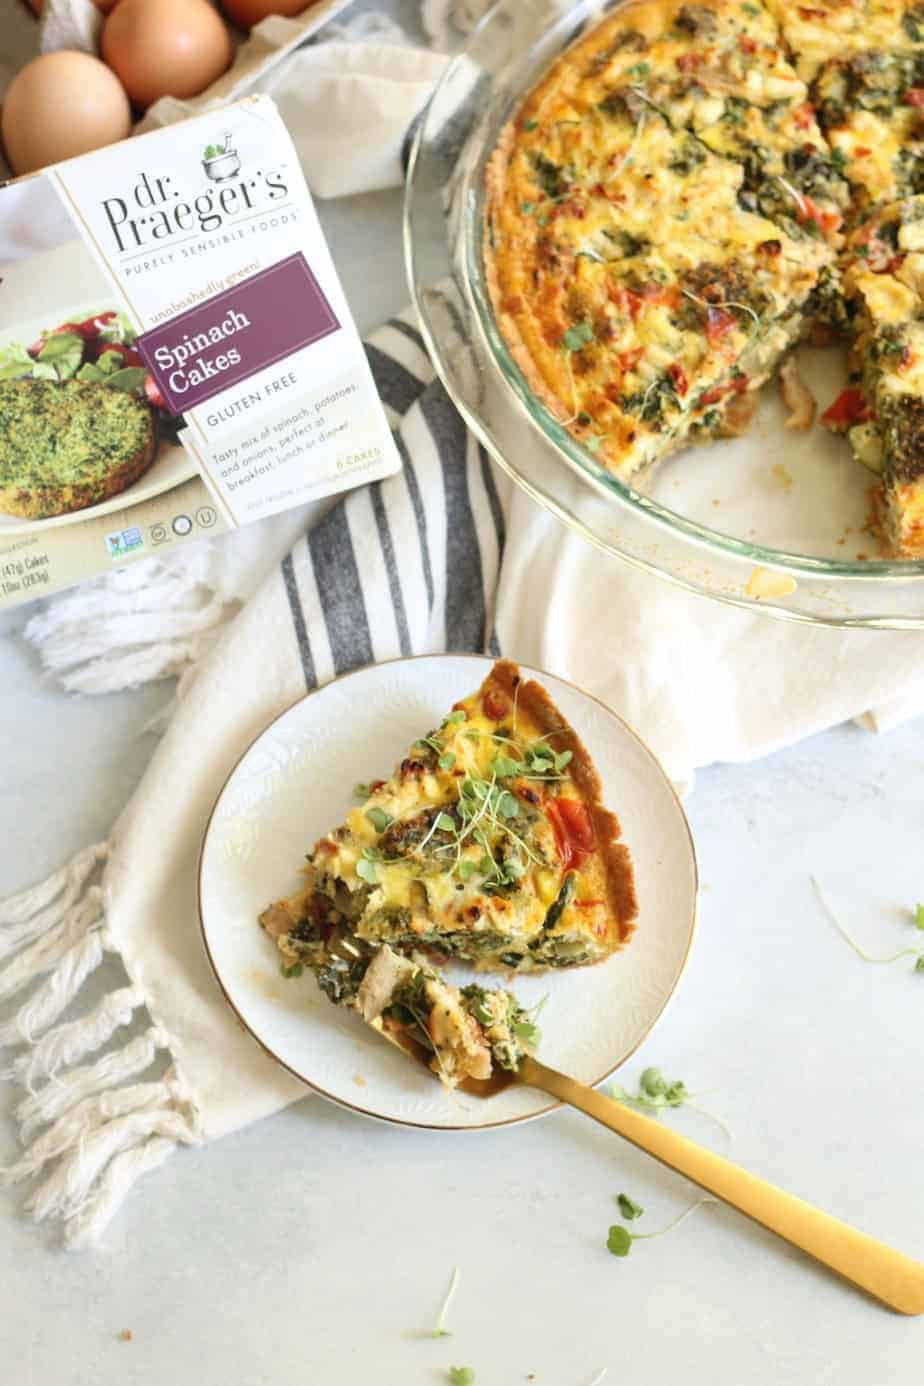 This delicious Mediterranean Vegetable Quiche is a wholesome breakfast, lunch or dinner option! It